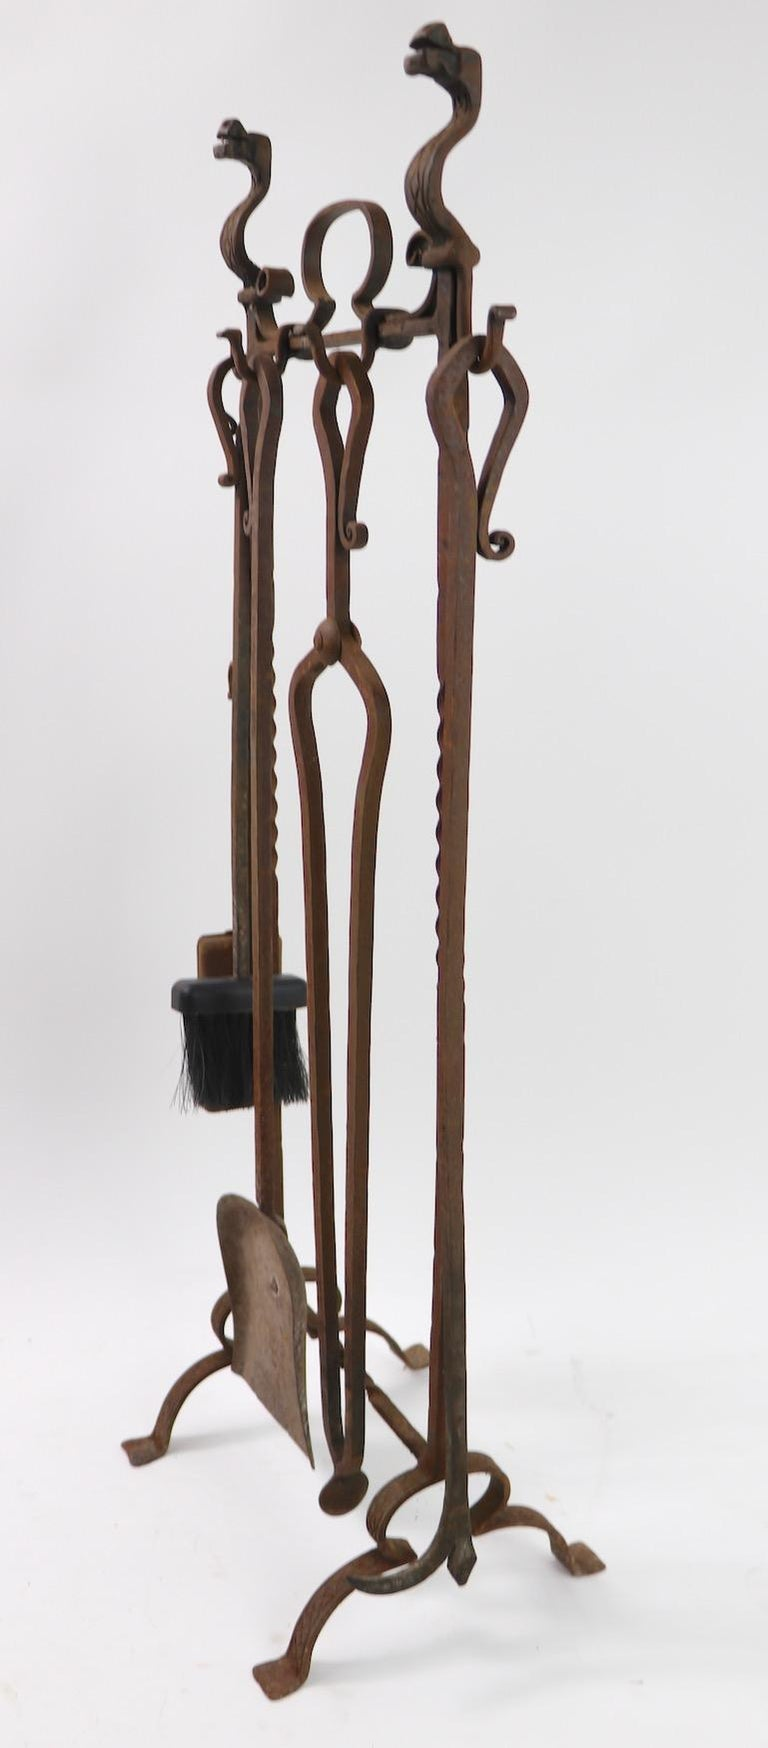 Wrought Iron 6-Piece Gothic Revival Fireplace Tool Set after Yellin For Sale